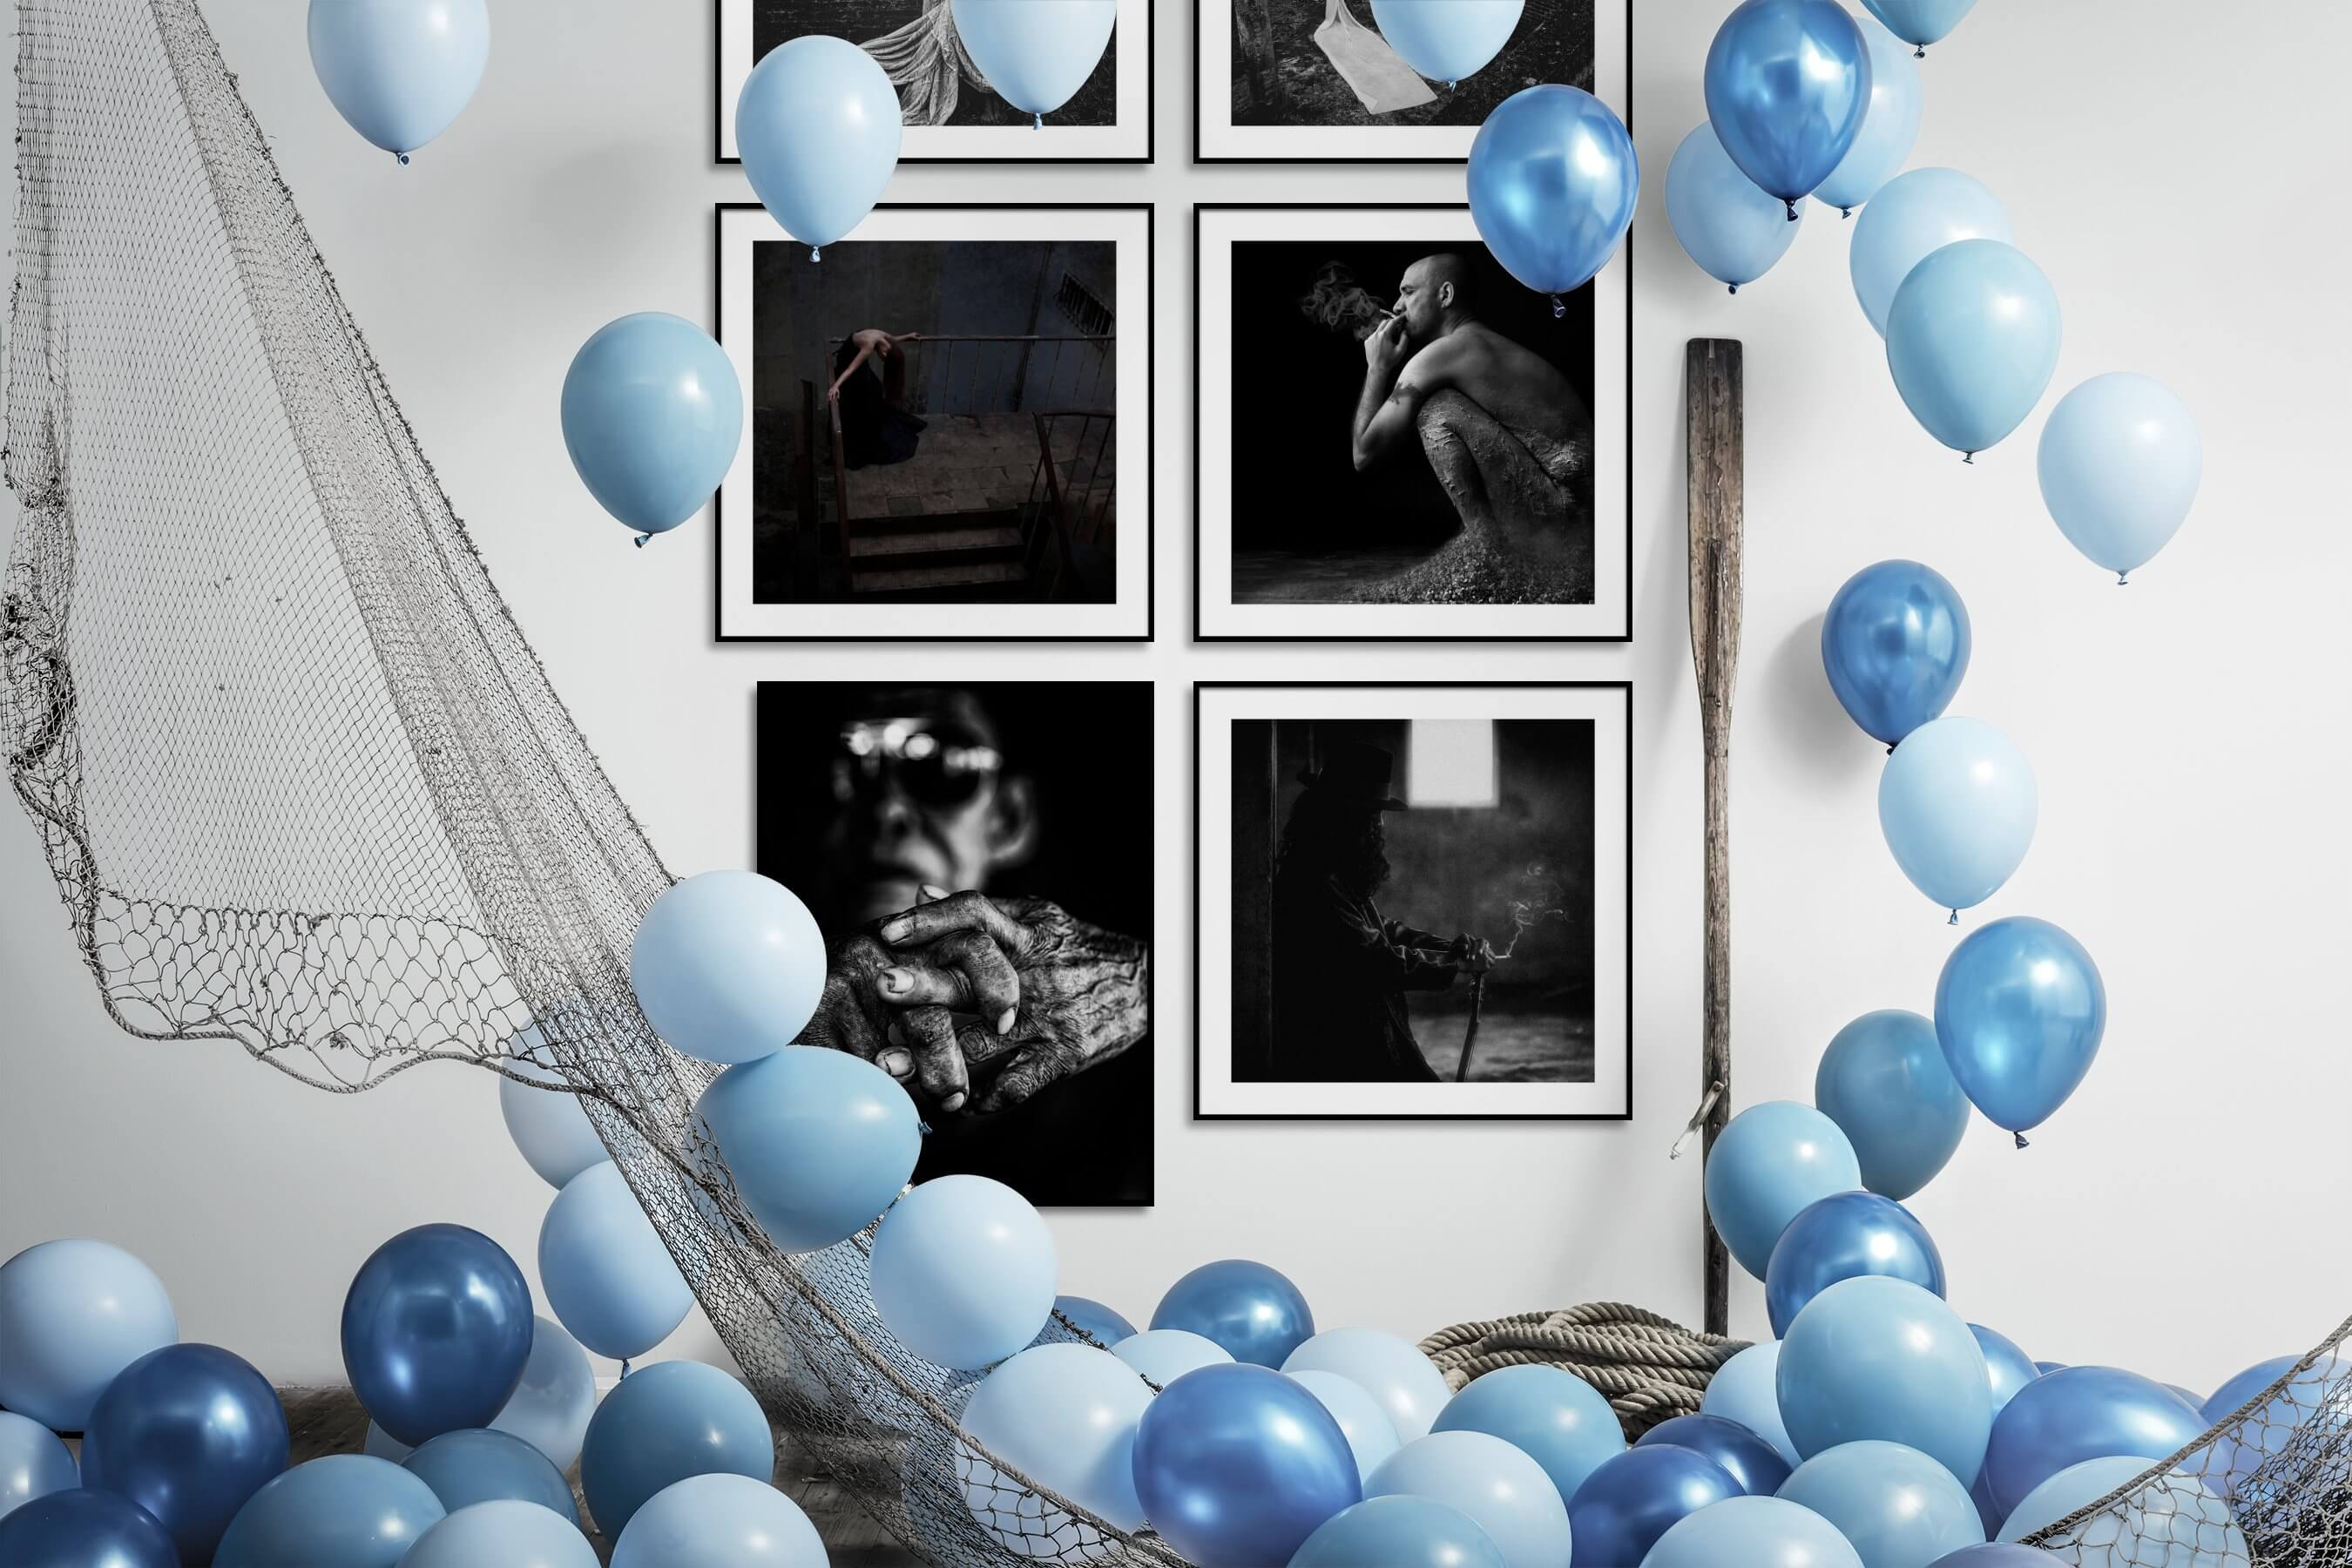 Gallery wall idea with six framed pictures arranged on a wall depicting Artsy, Black & White, Dark Tones, For the Moderate, Fashion & Beauty, and Vintage